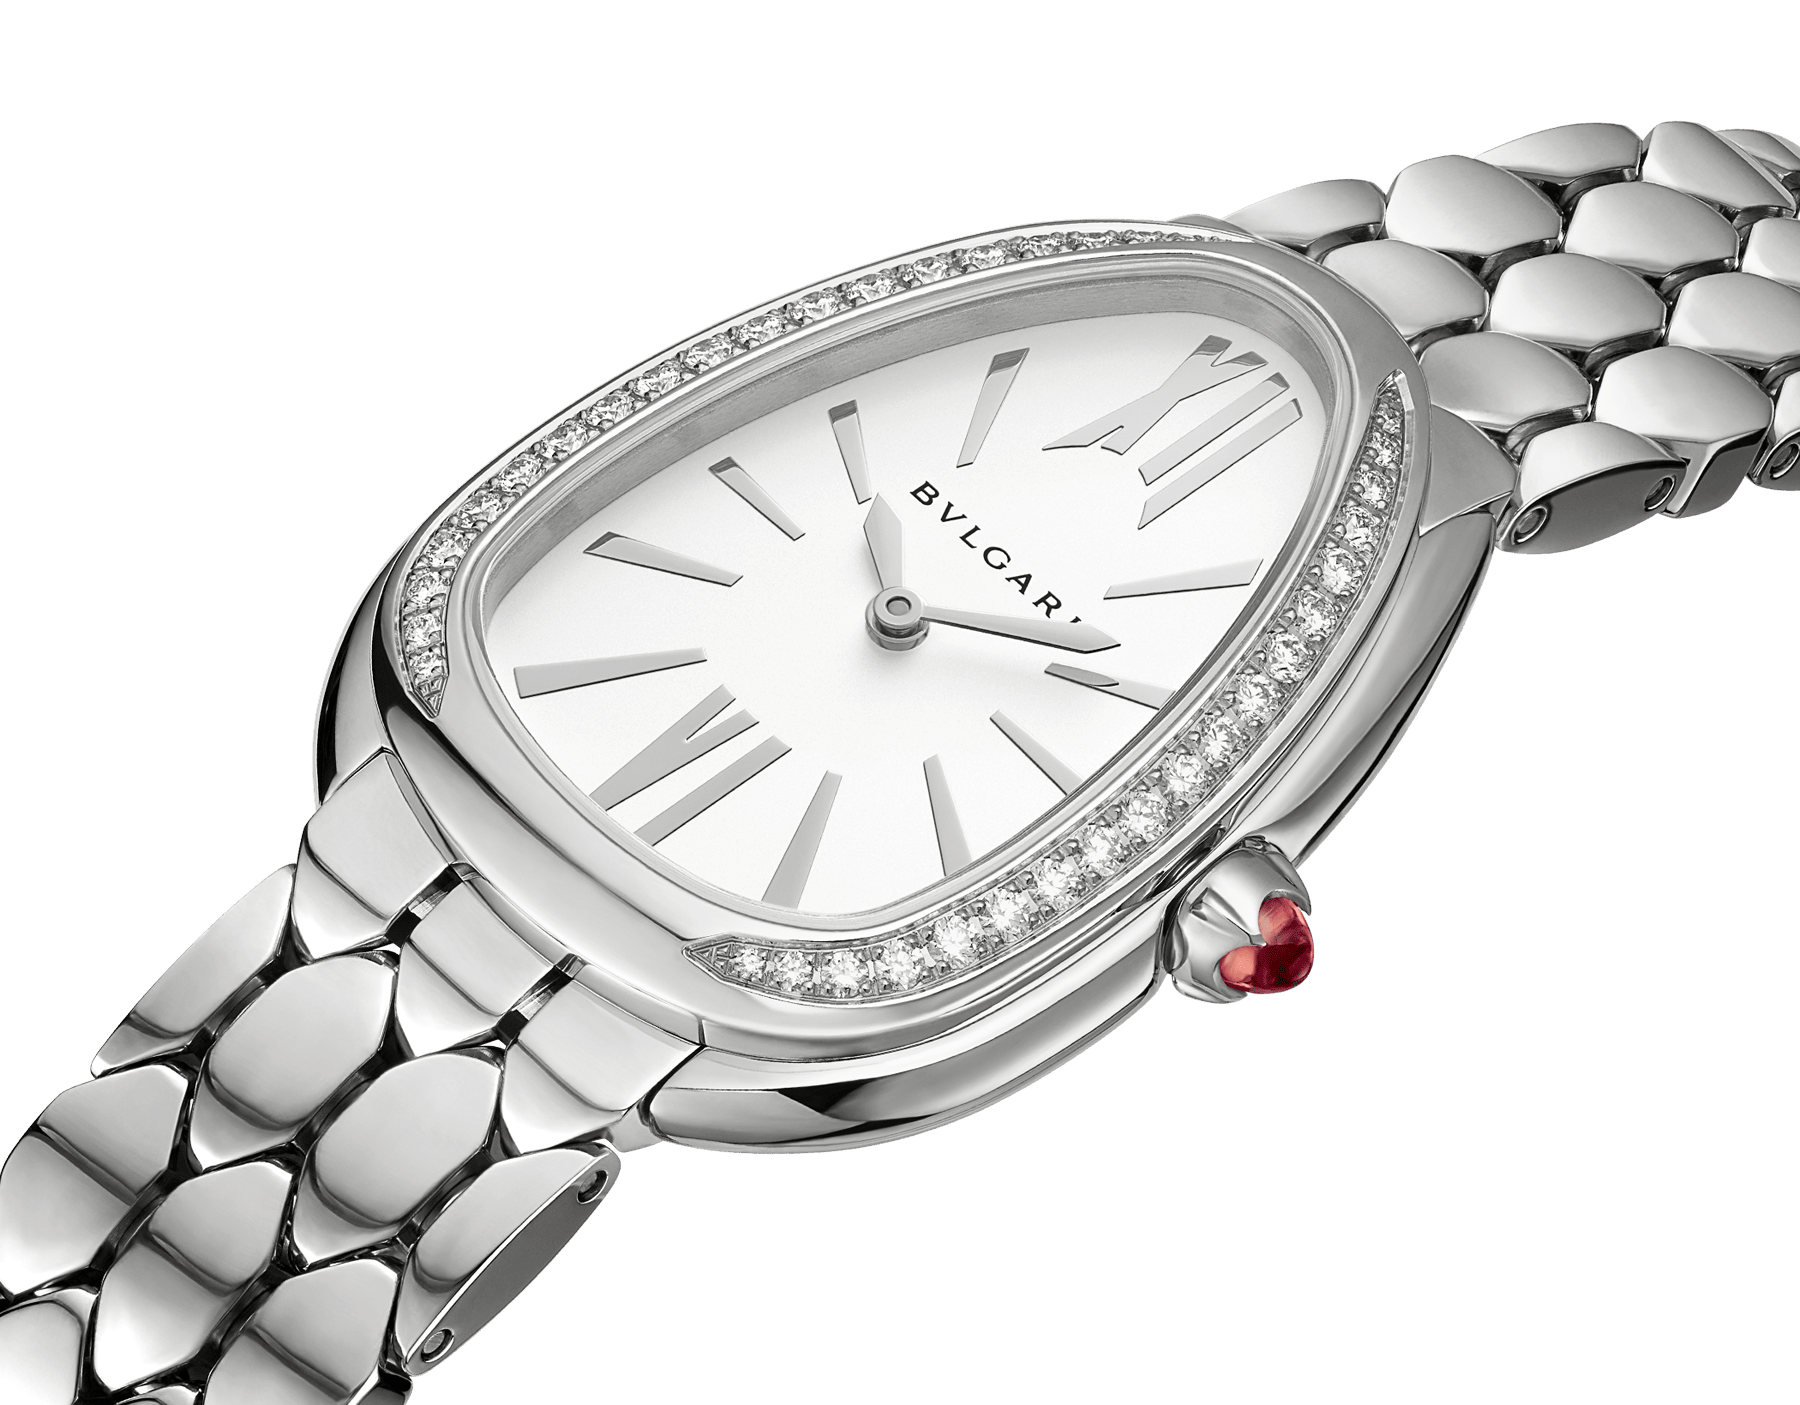 Serpenti Seduttori watch in stainless steel case and bracelet, stainless steel bezel set with diamonds and white silver opaline dial 103361 image 3